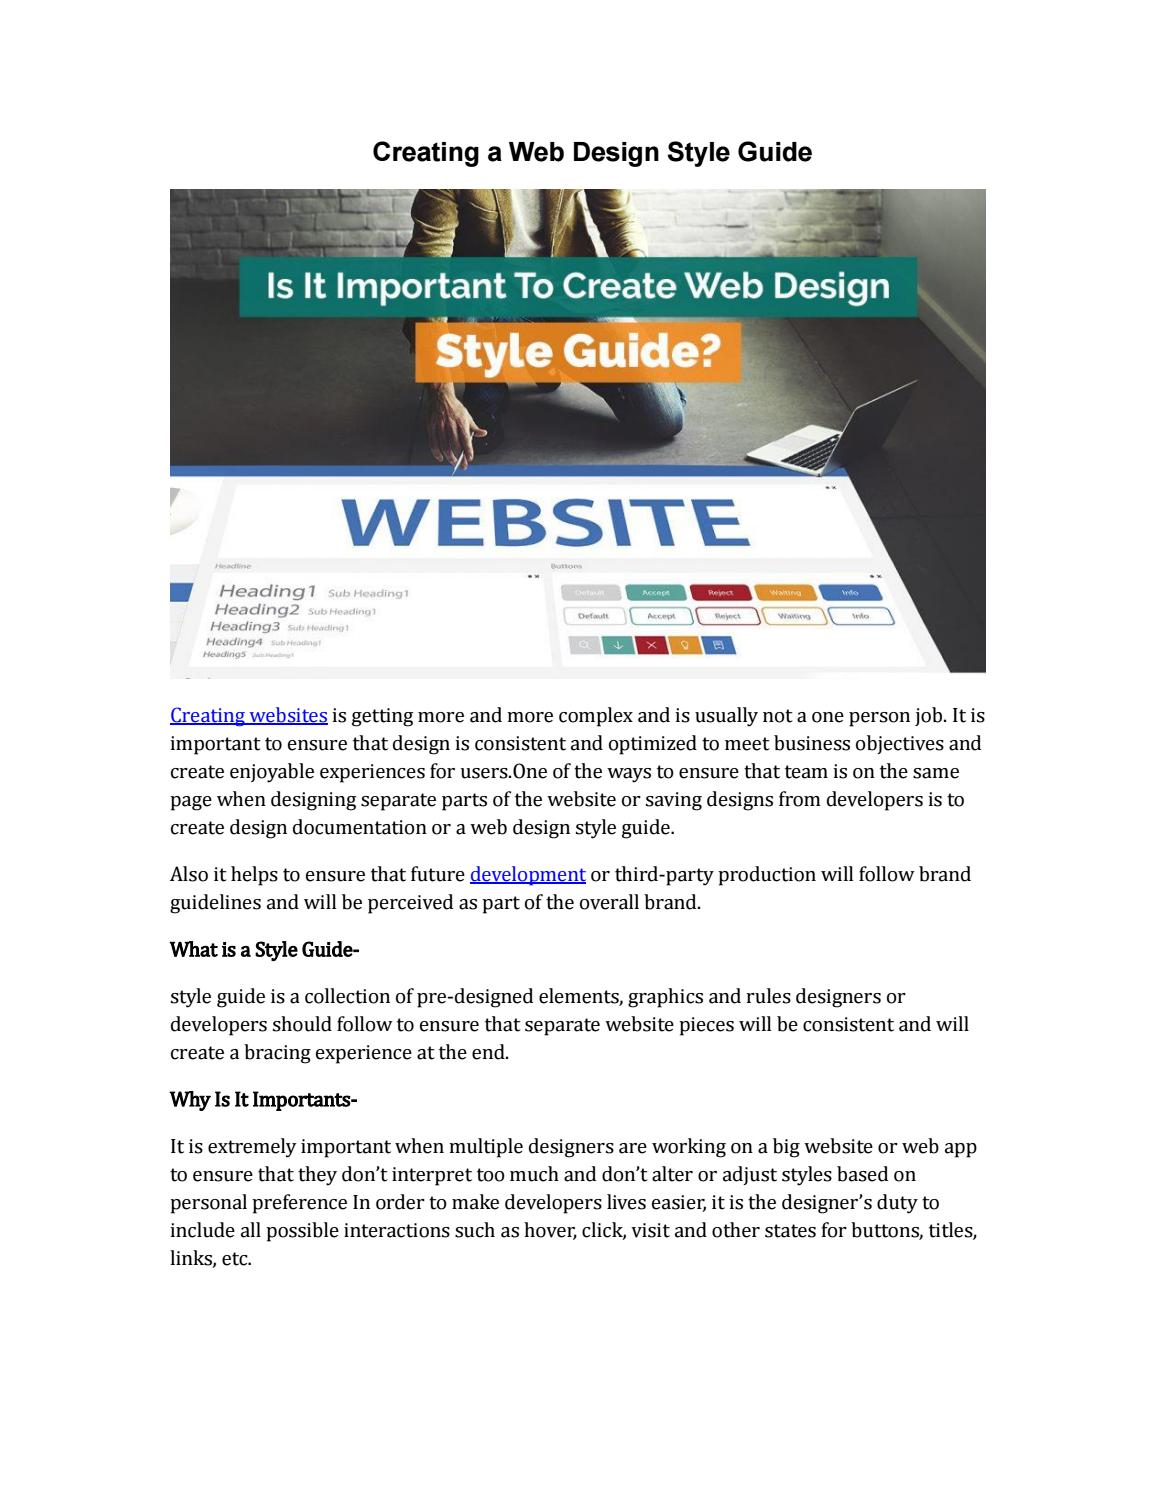 Creating a Web Design Style Guide by PiTech Indore - issuu